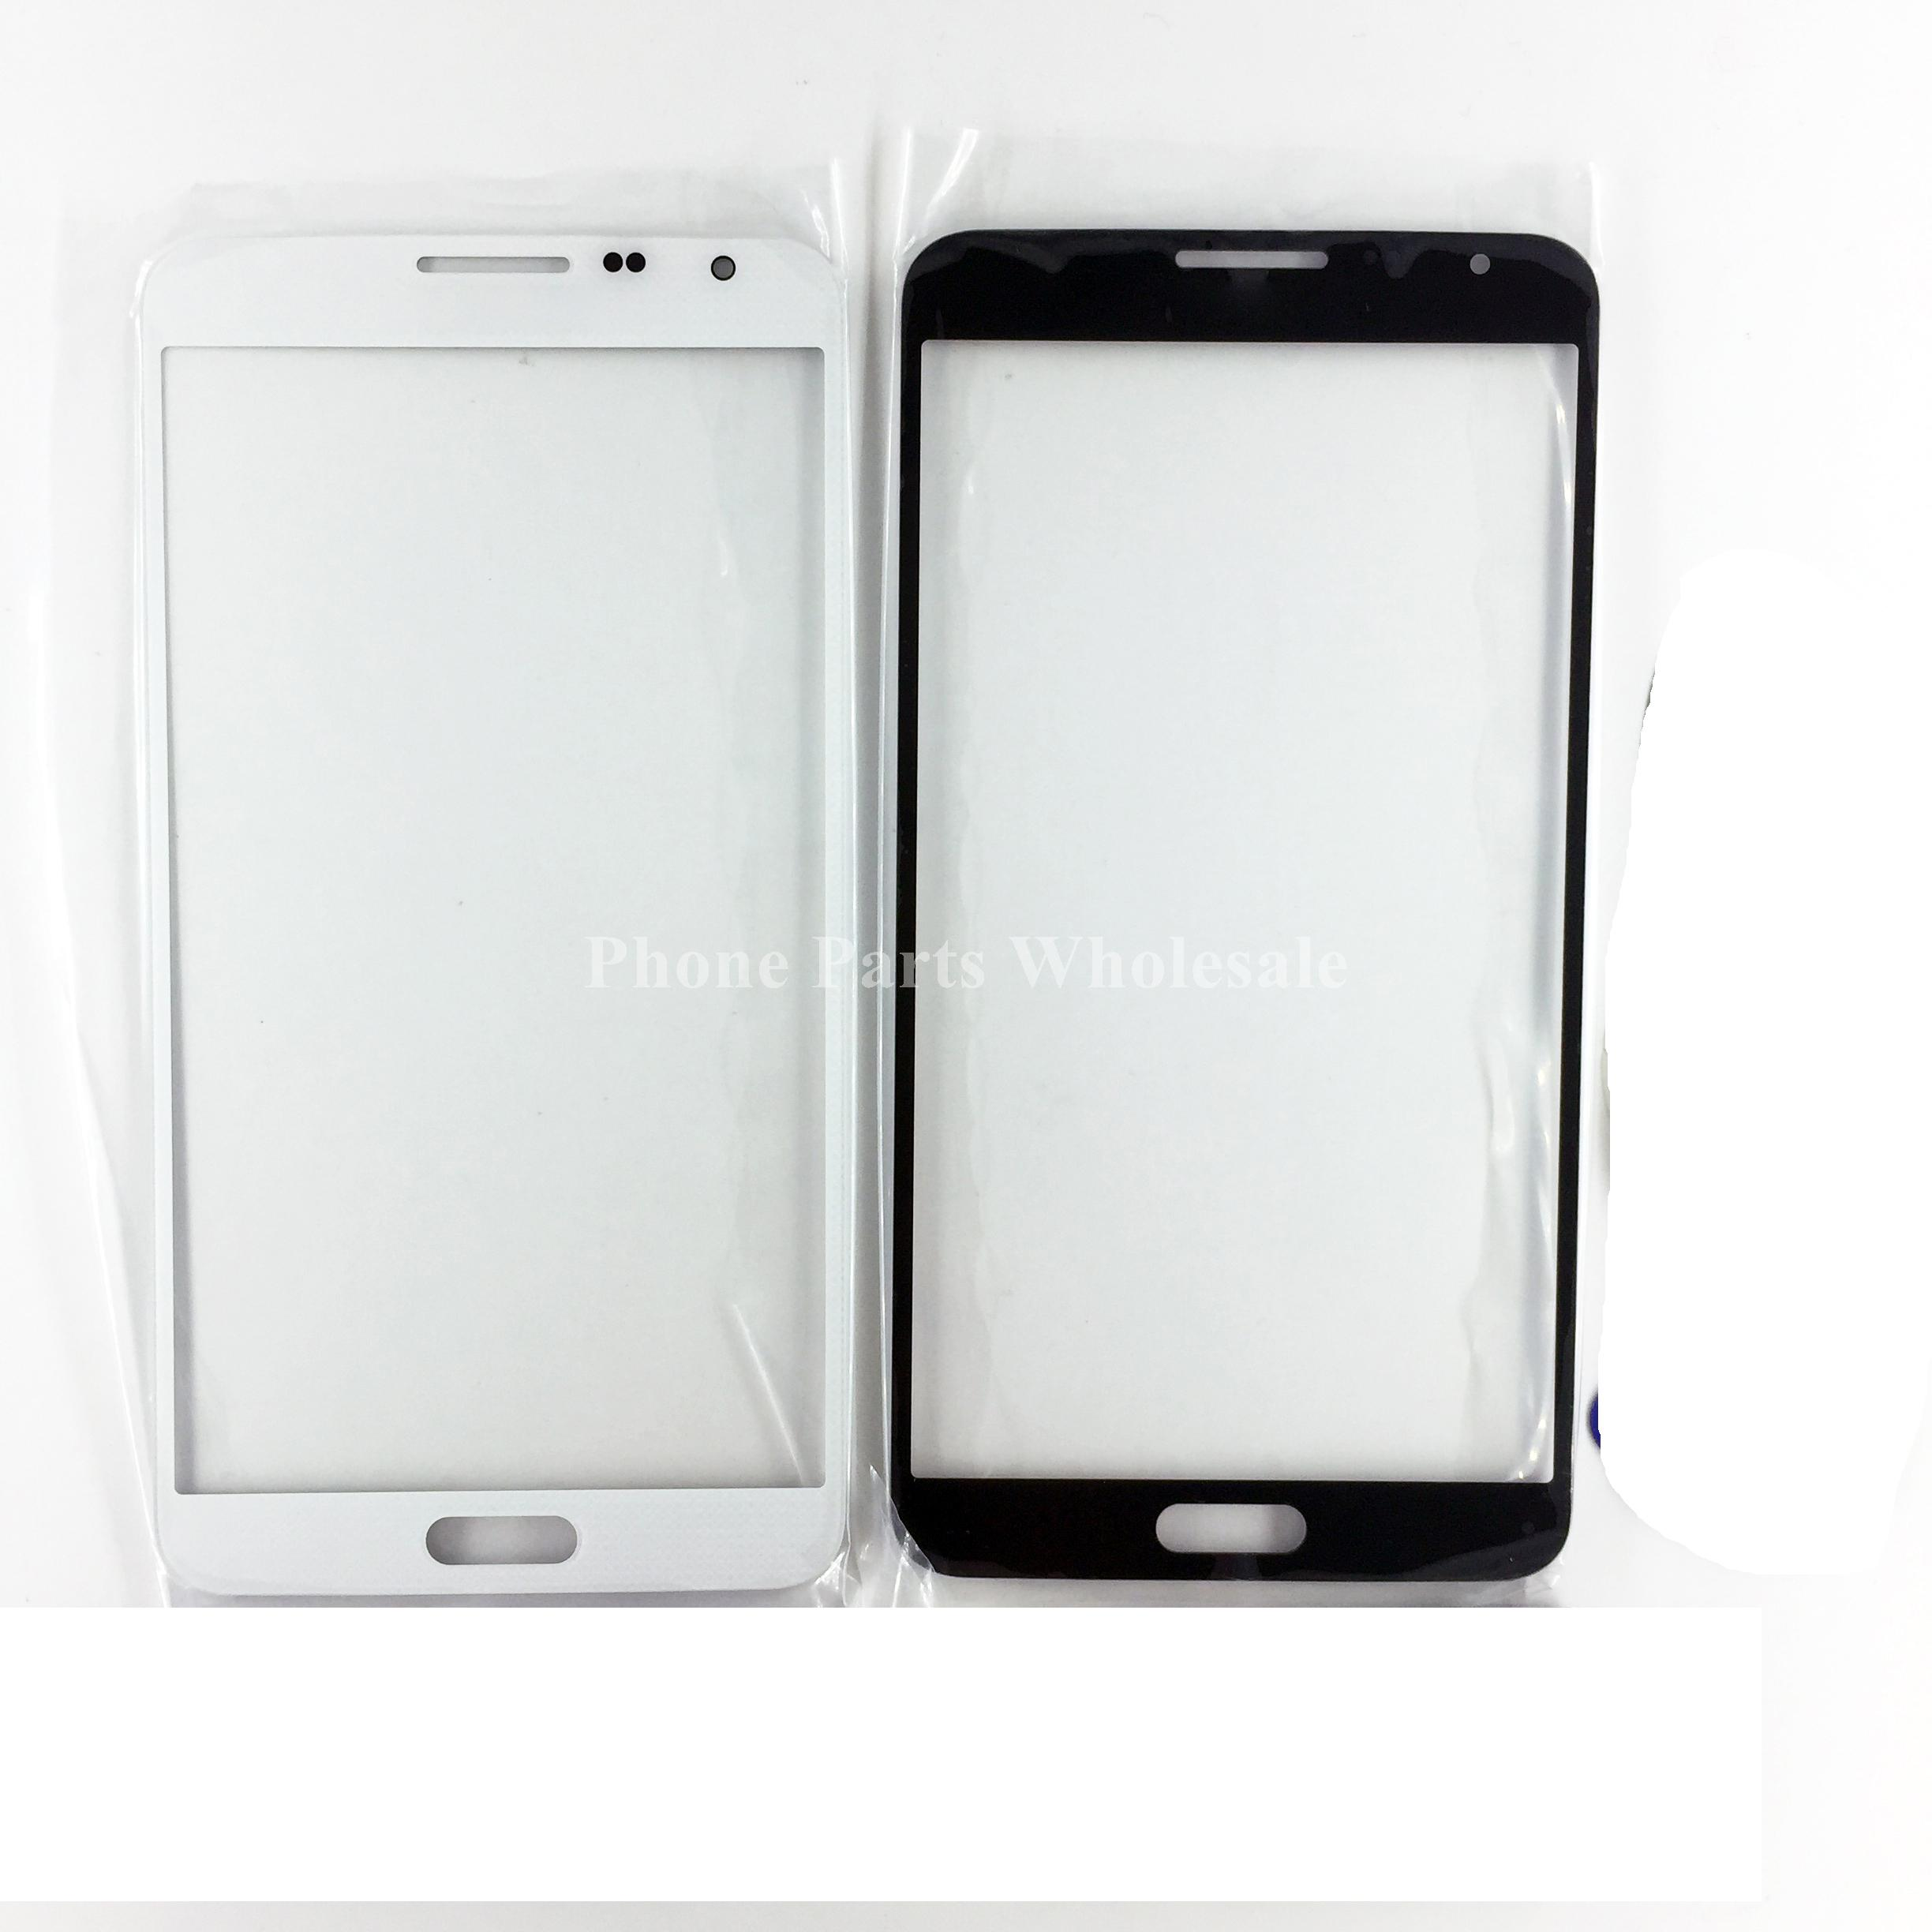 For Samsung Galaxy Note 3 Neo Mini LCD Front Outer Glass Lens Screen Panal Glass Lens Cover Replacement Parts